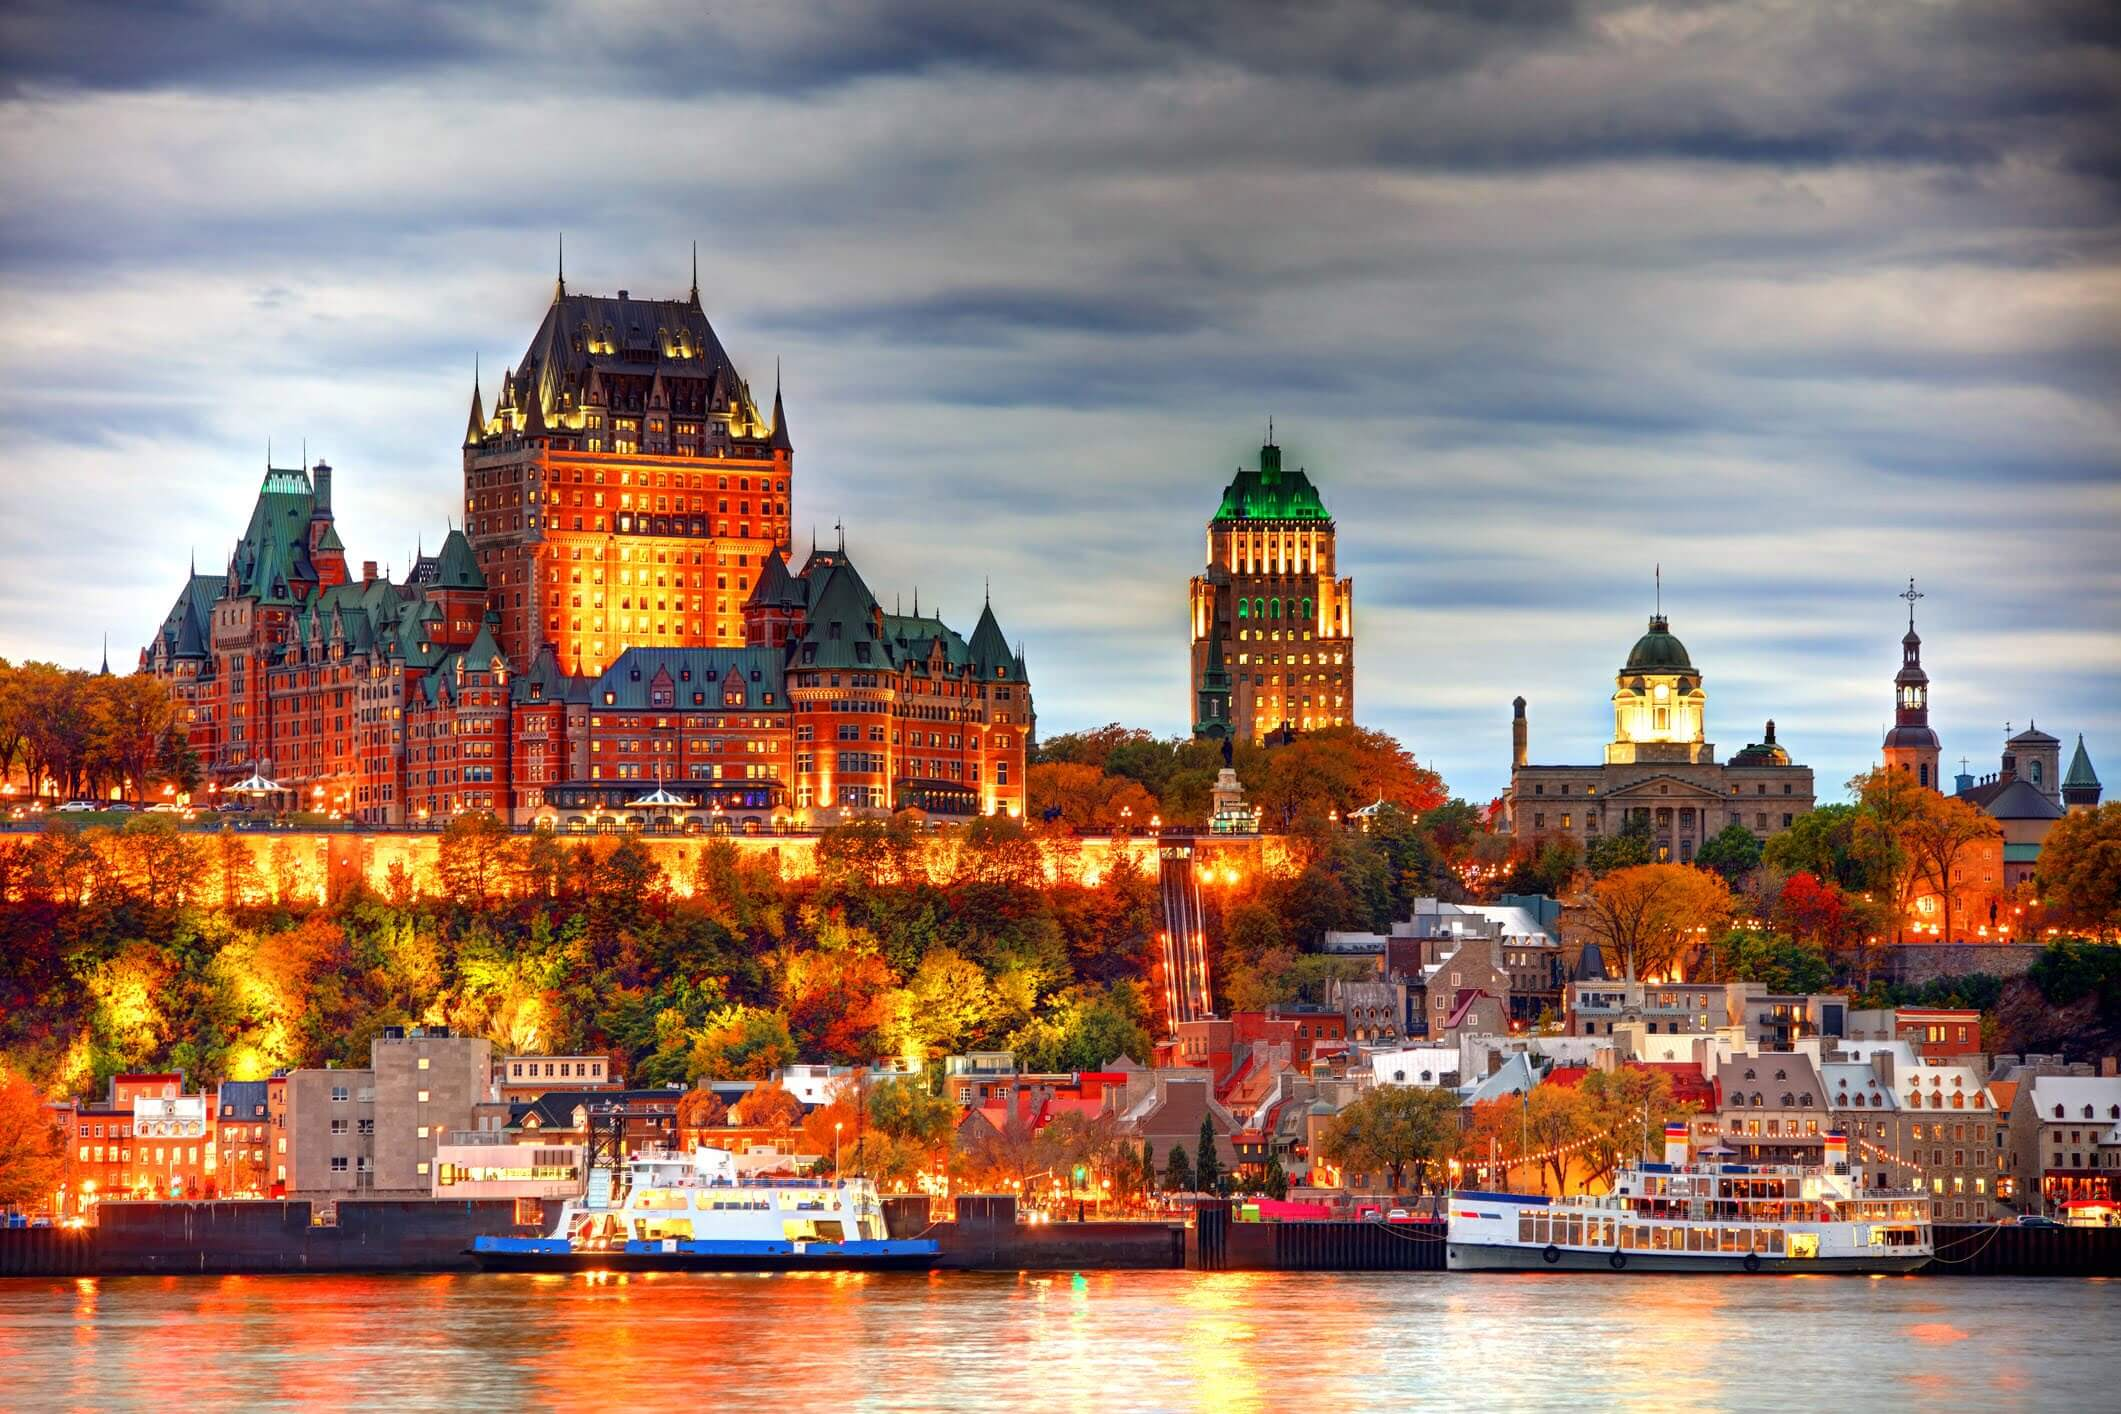 Quebec City skyline along the St Lawrence River